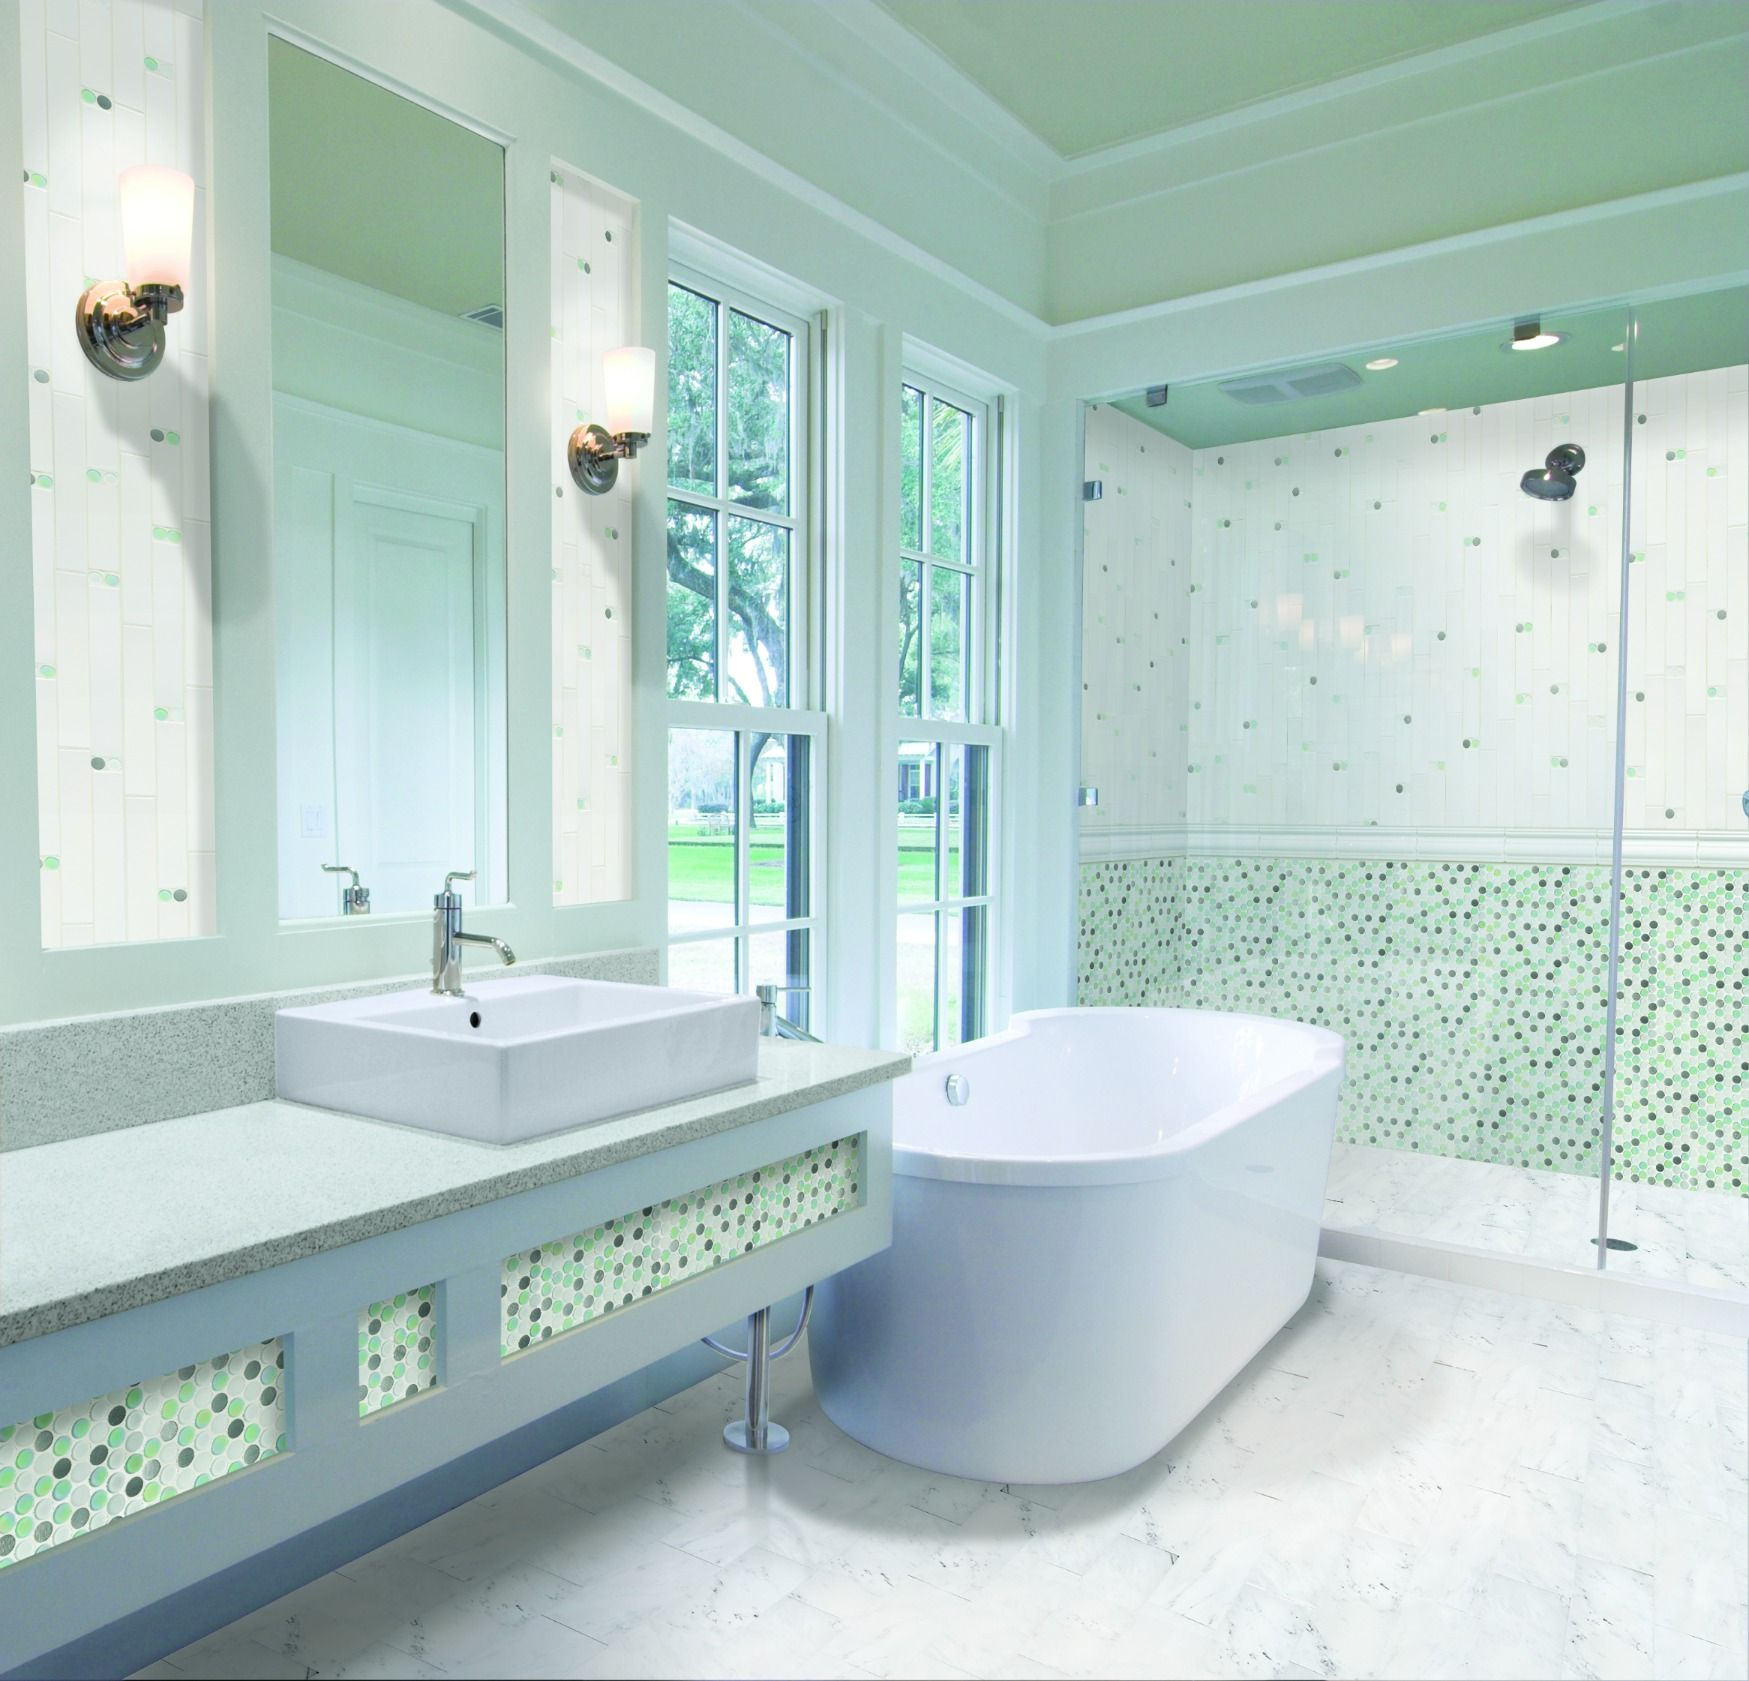 The translucent beauty and utility of glass tile is exemplified by ...